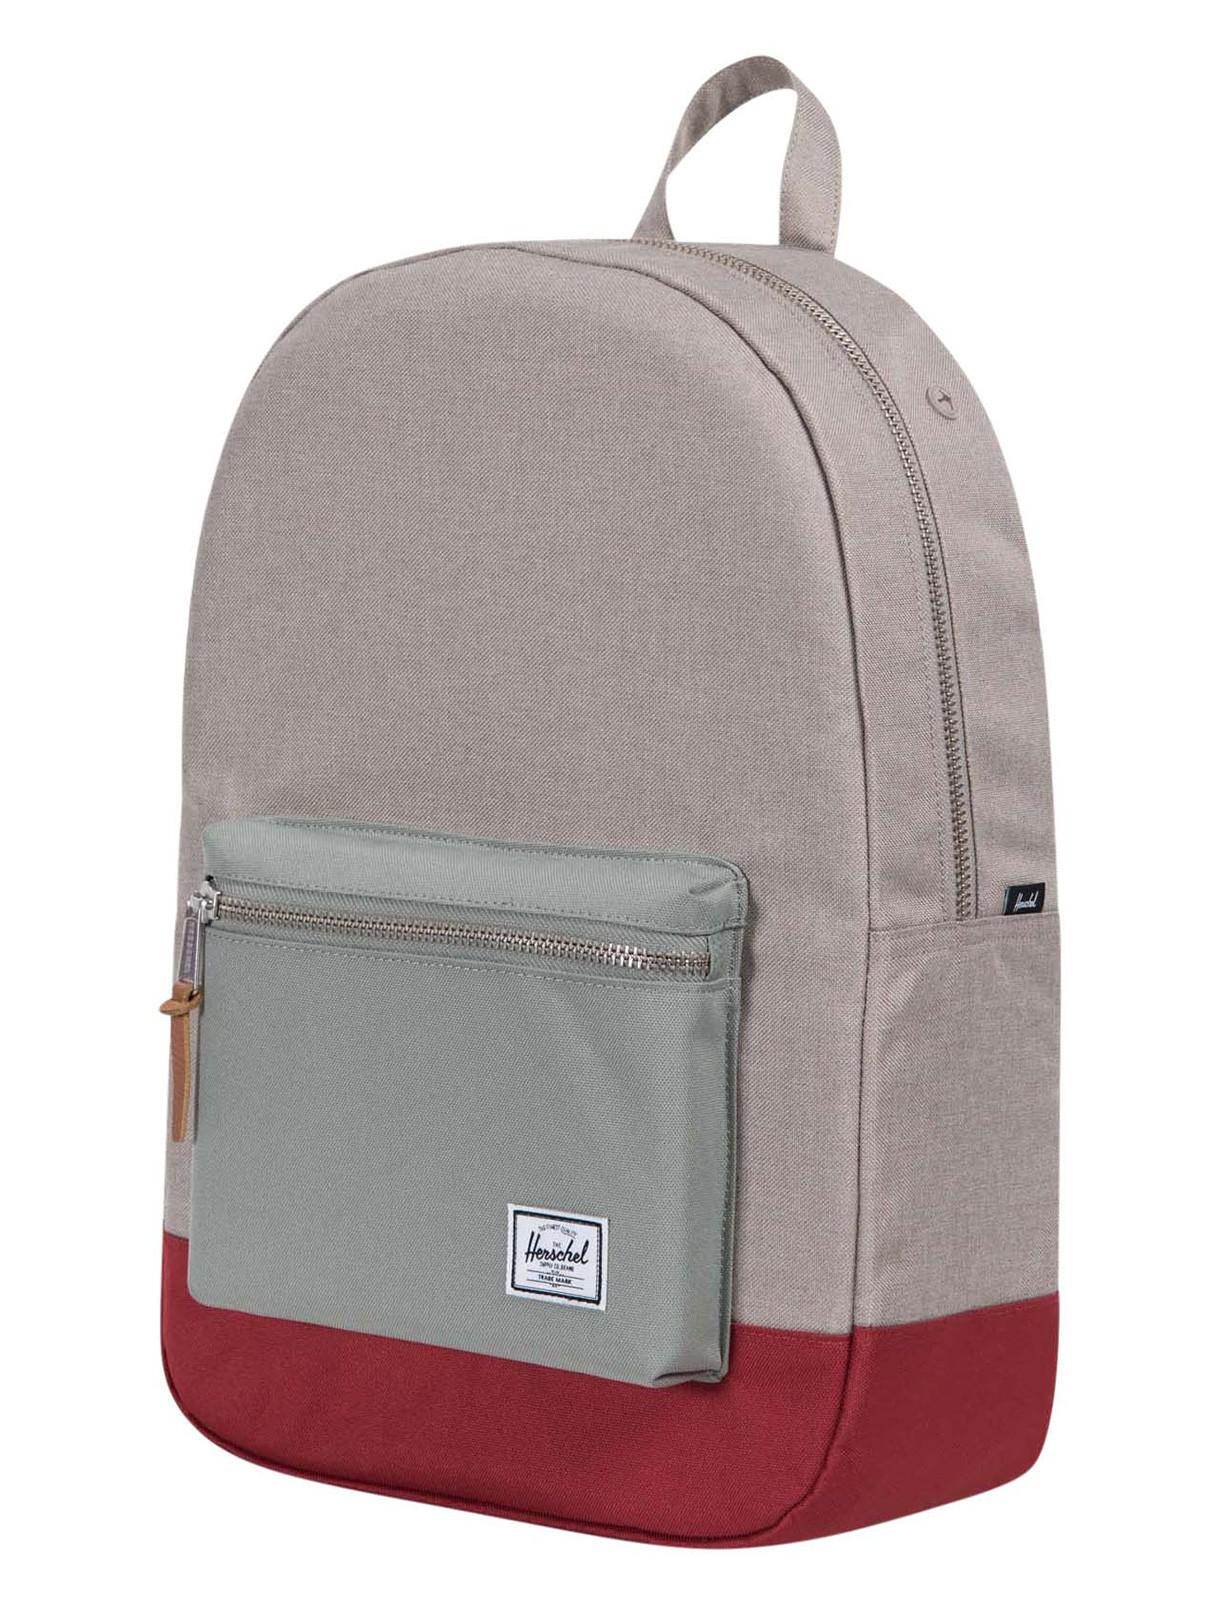 4fc7bf1ff22d Herschel Supply Co. Light Khaki